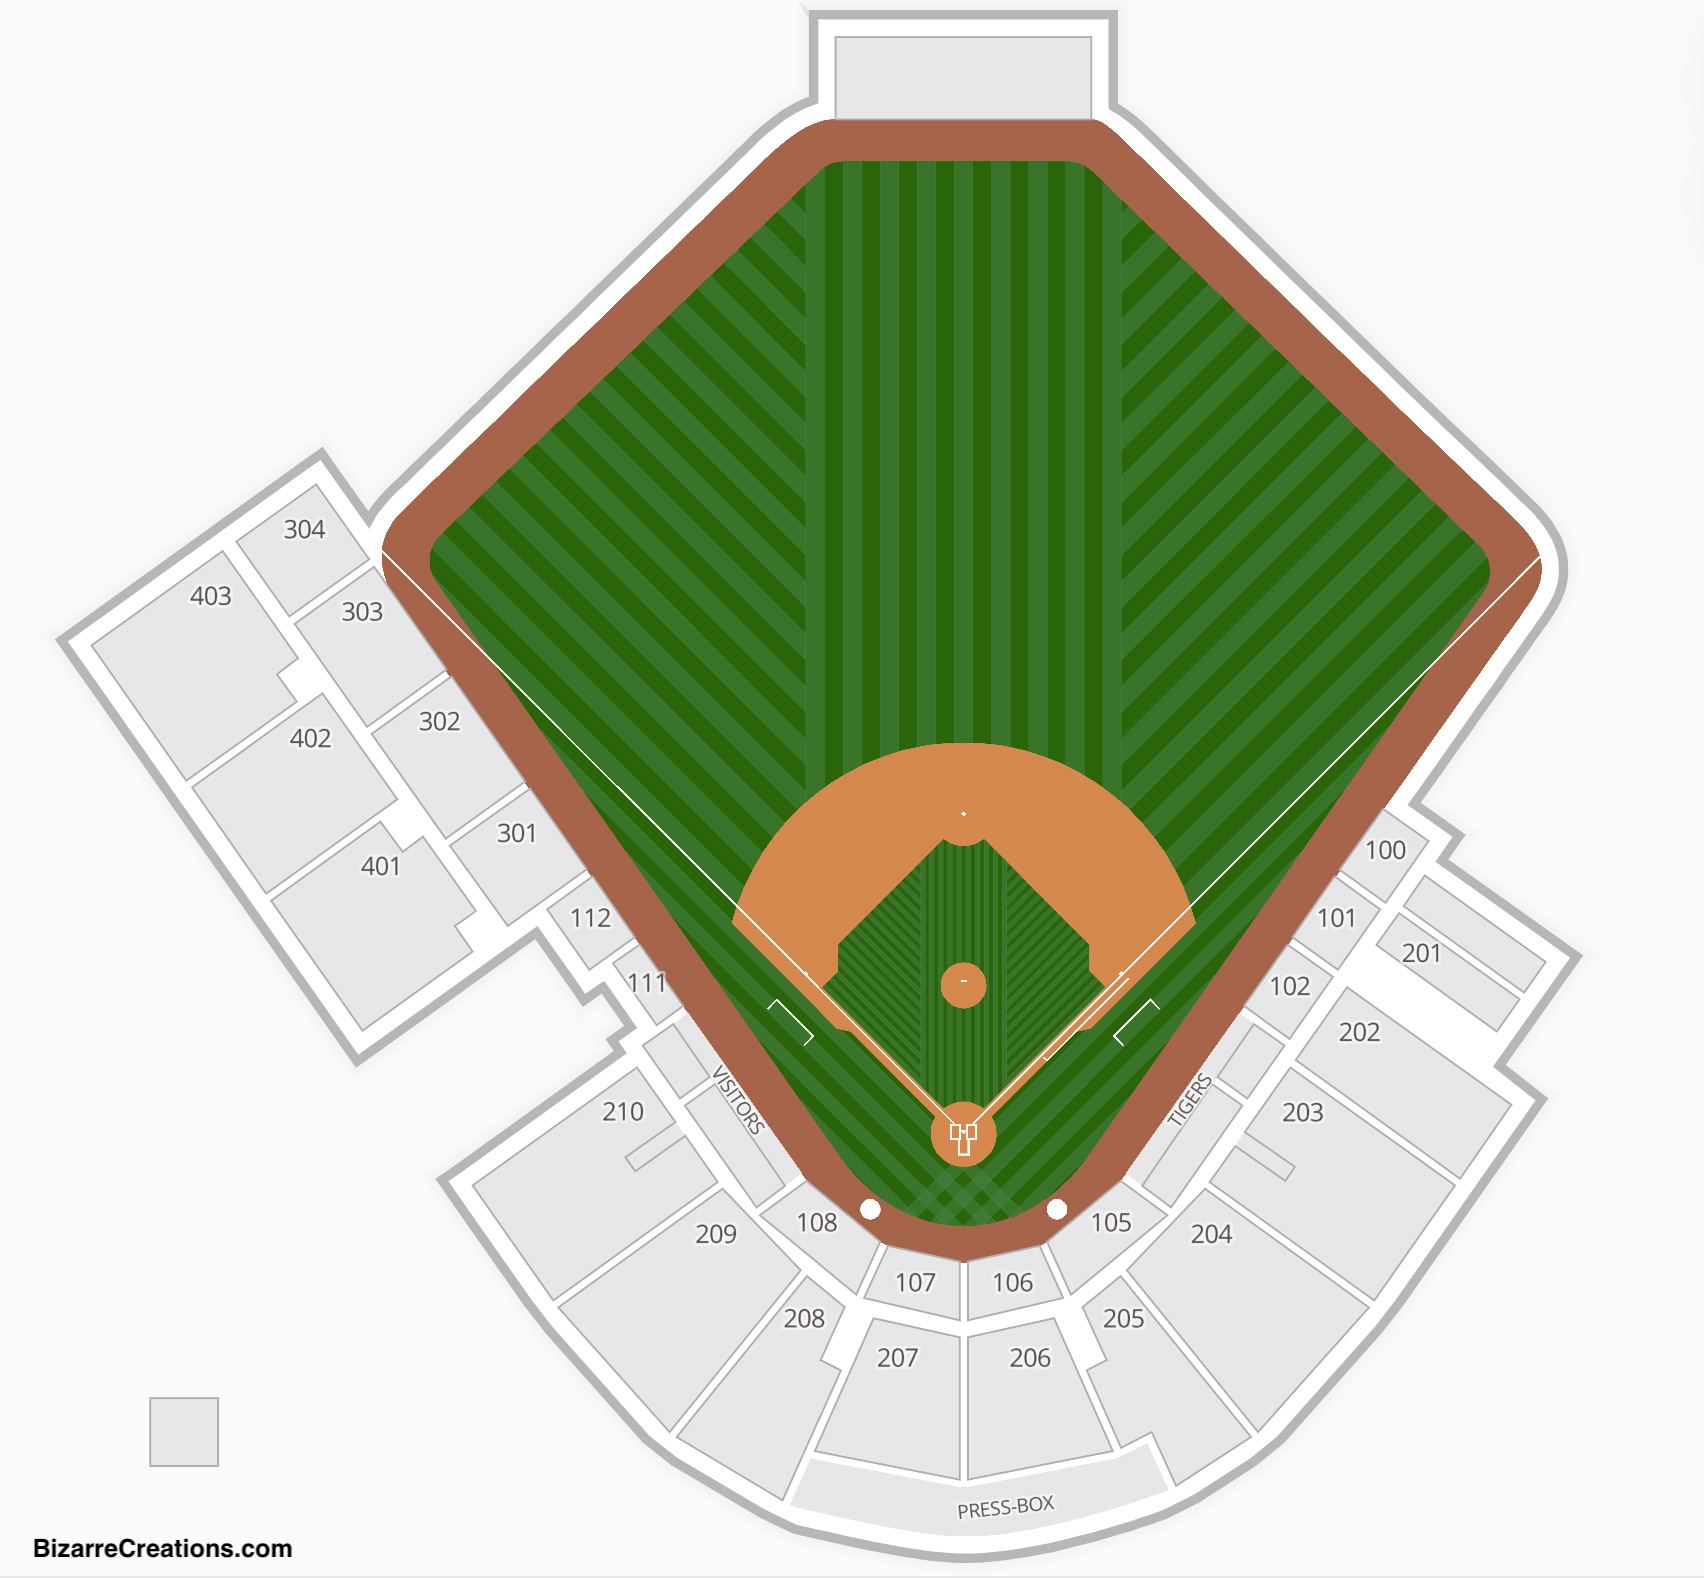 Publix field at joker marchant stadium seating chart seating